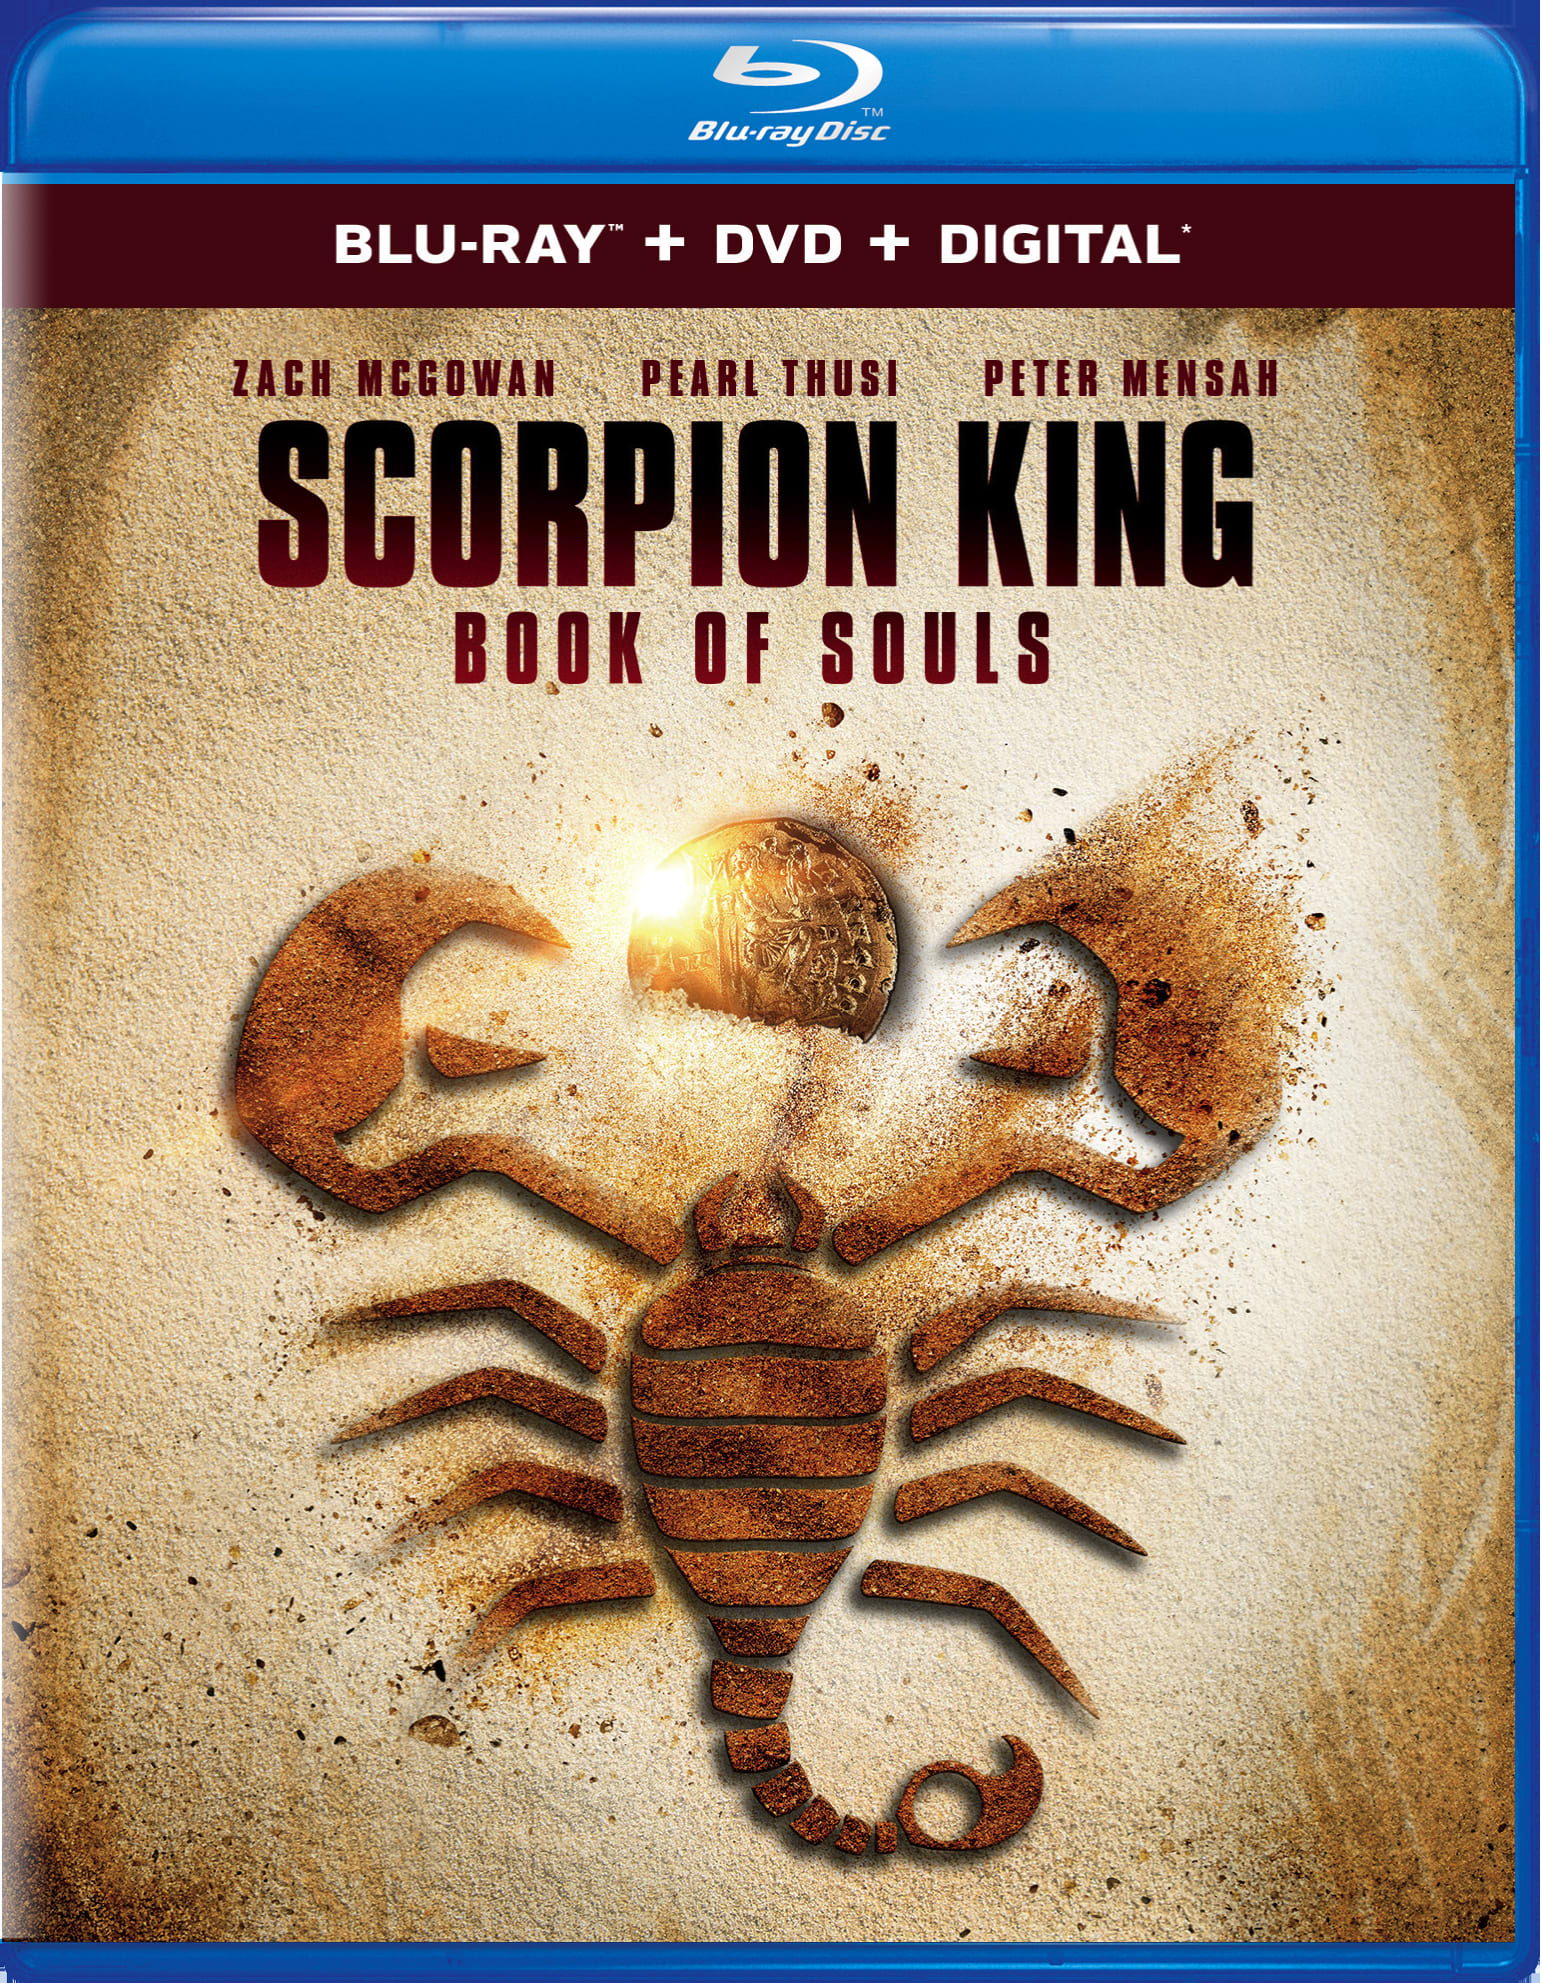 Scorpion King: Book of Souls (DVD + Digital) [Blu-ray]